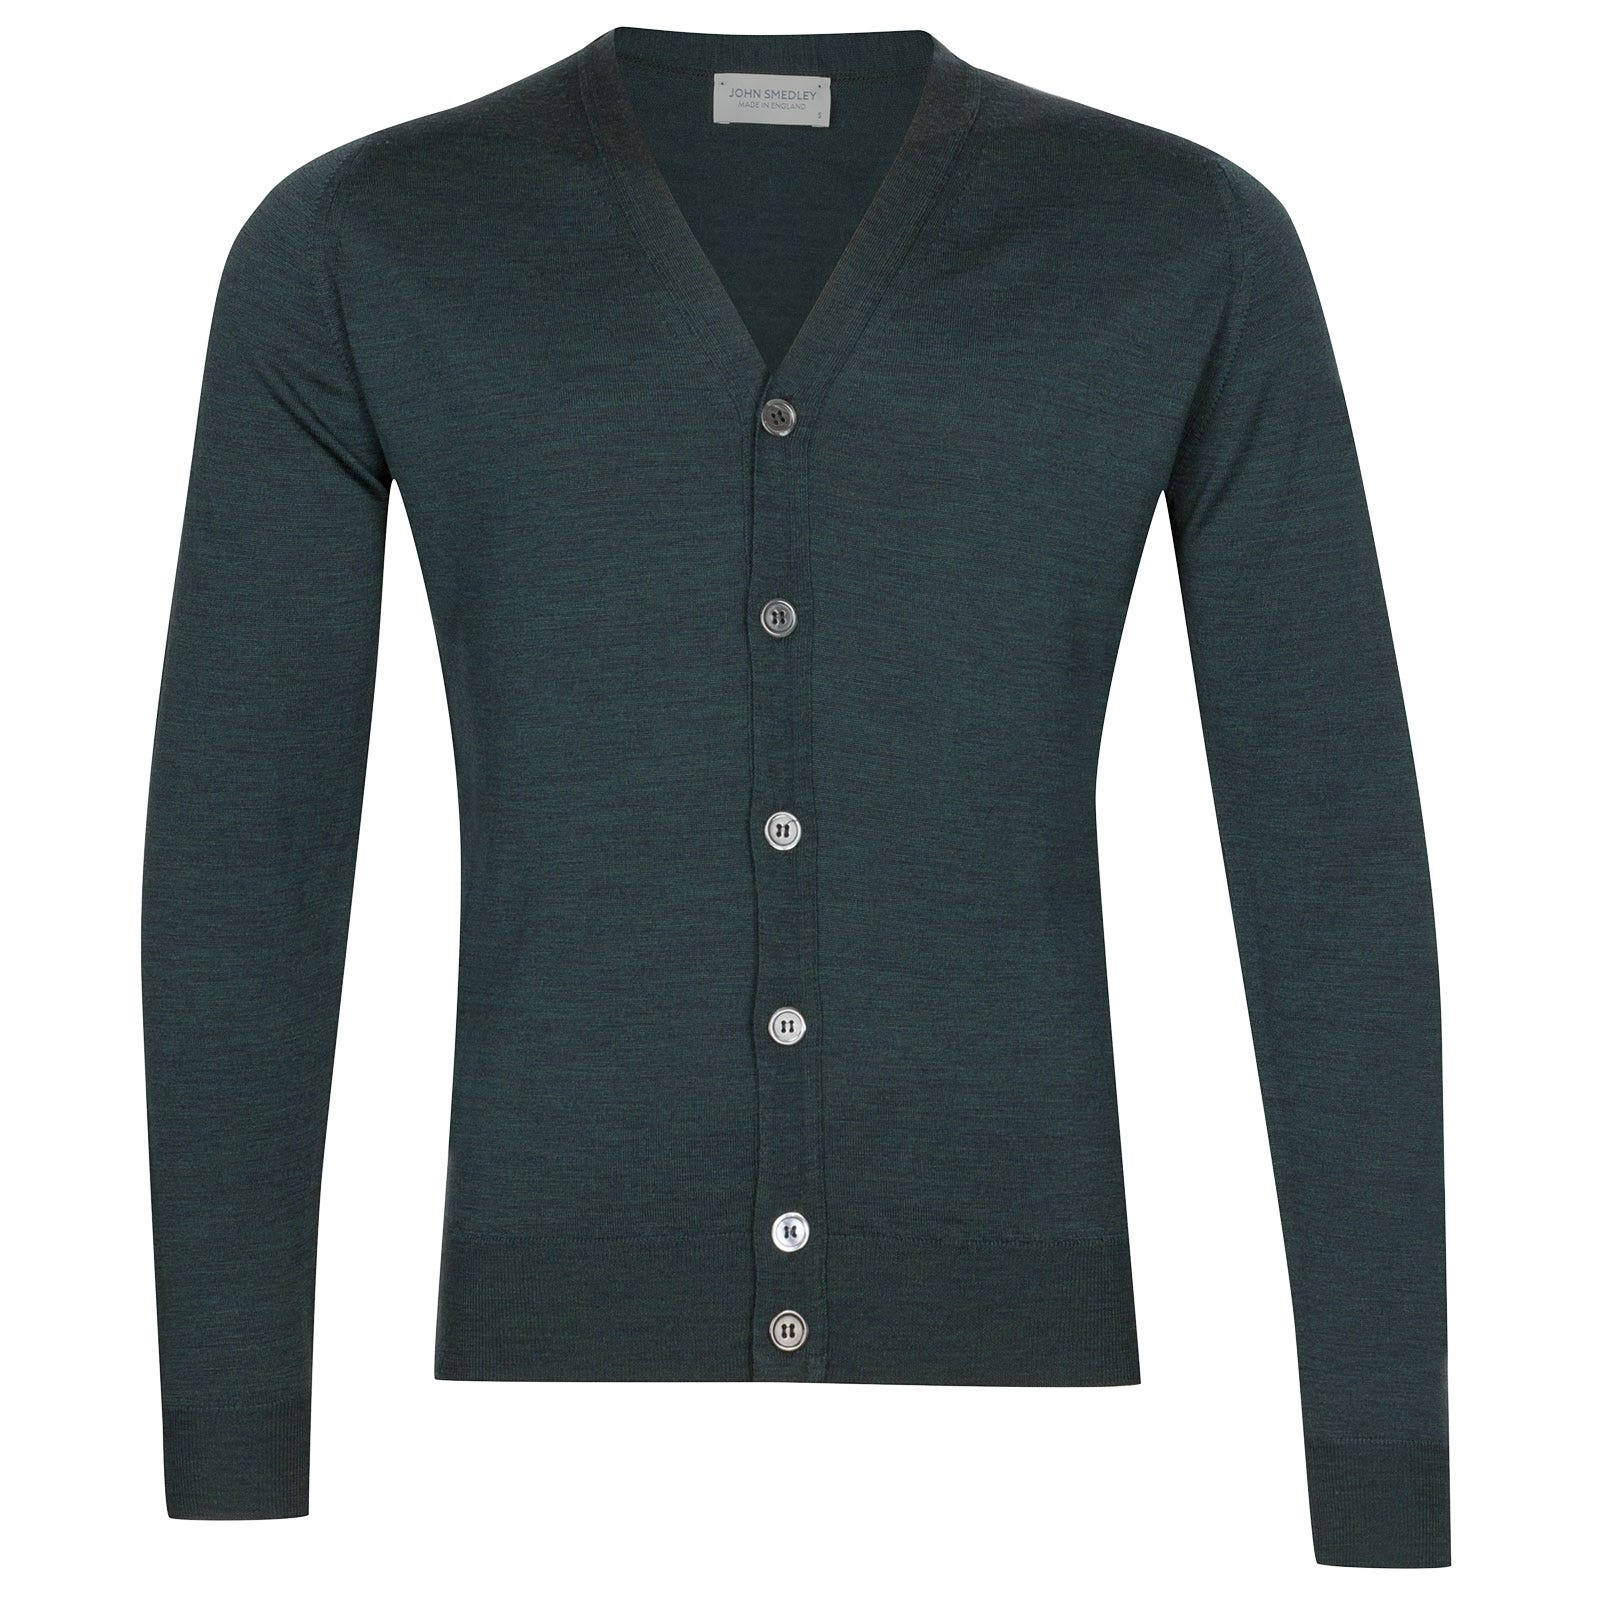 John Smedley Naples Merino Wool Cardigan in Racing Green-XL